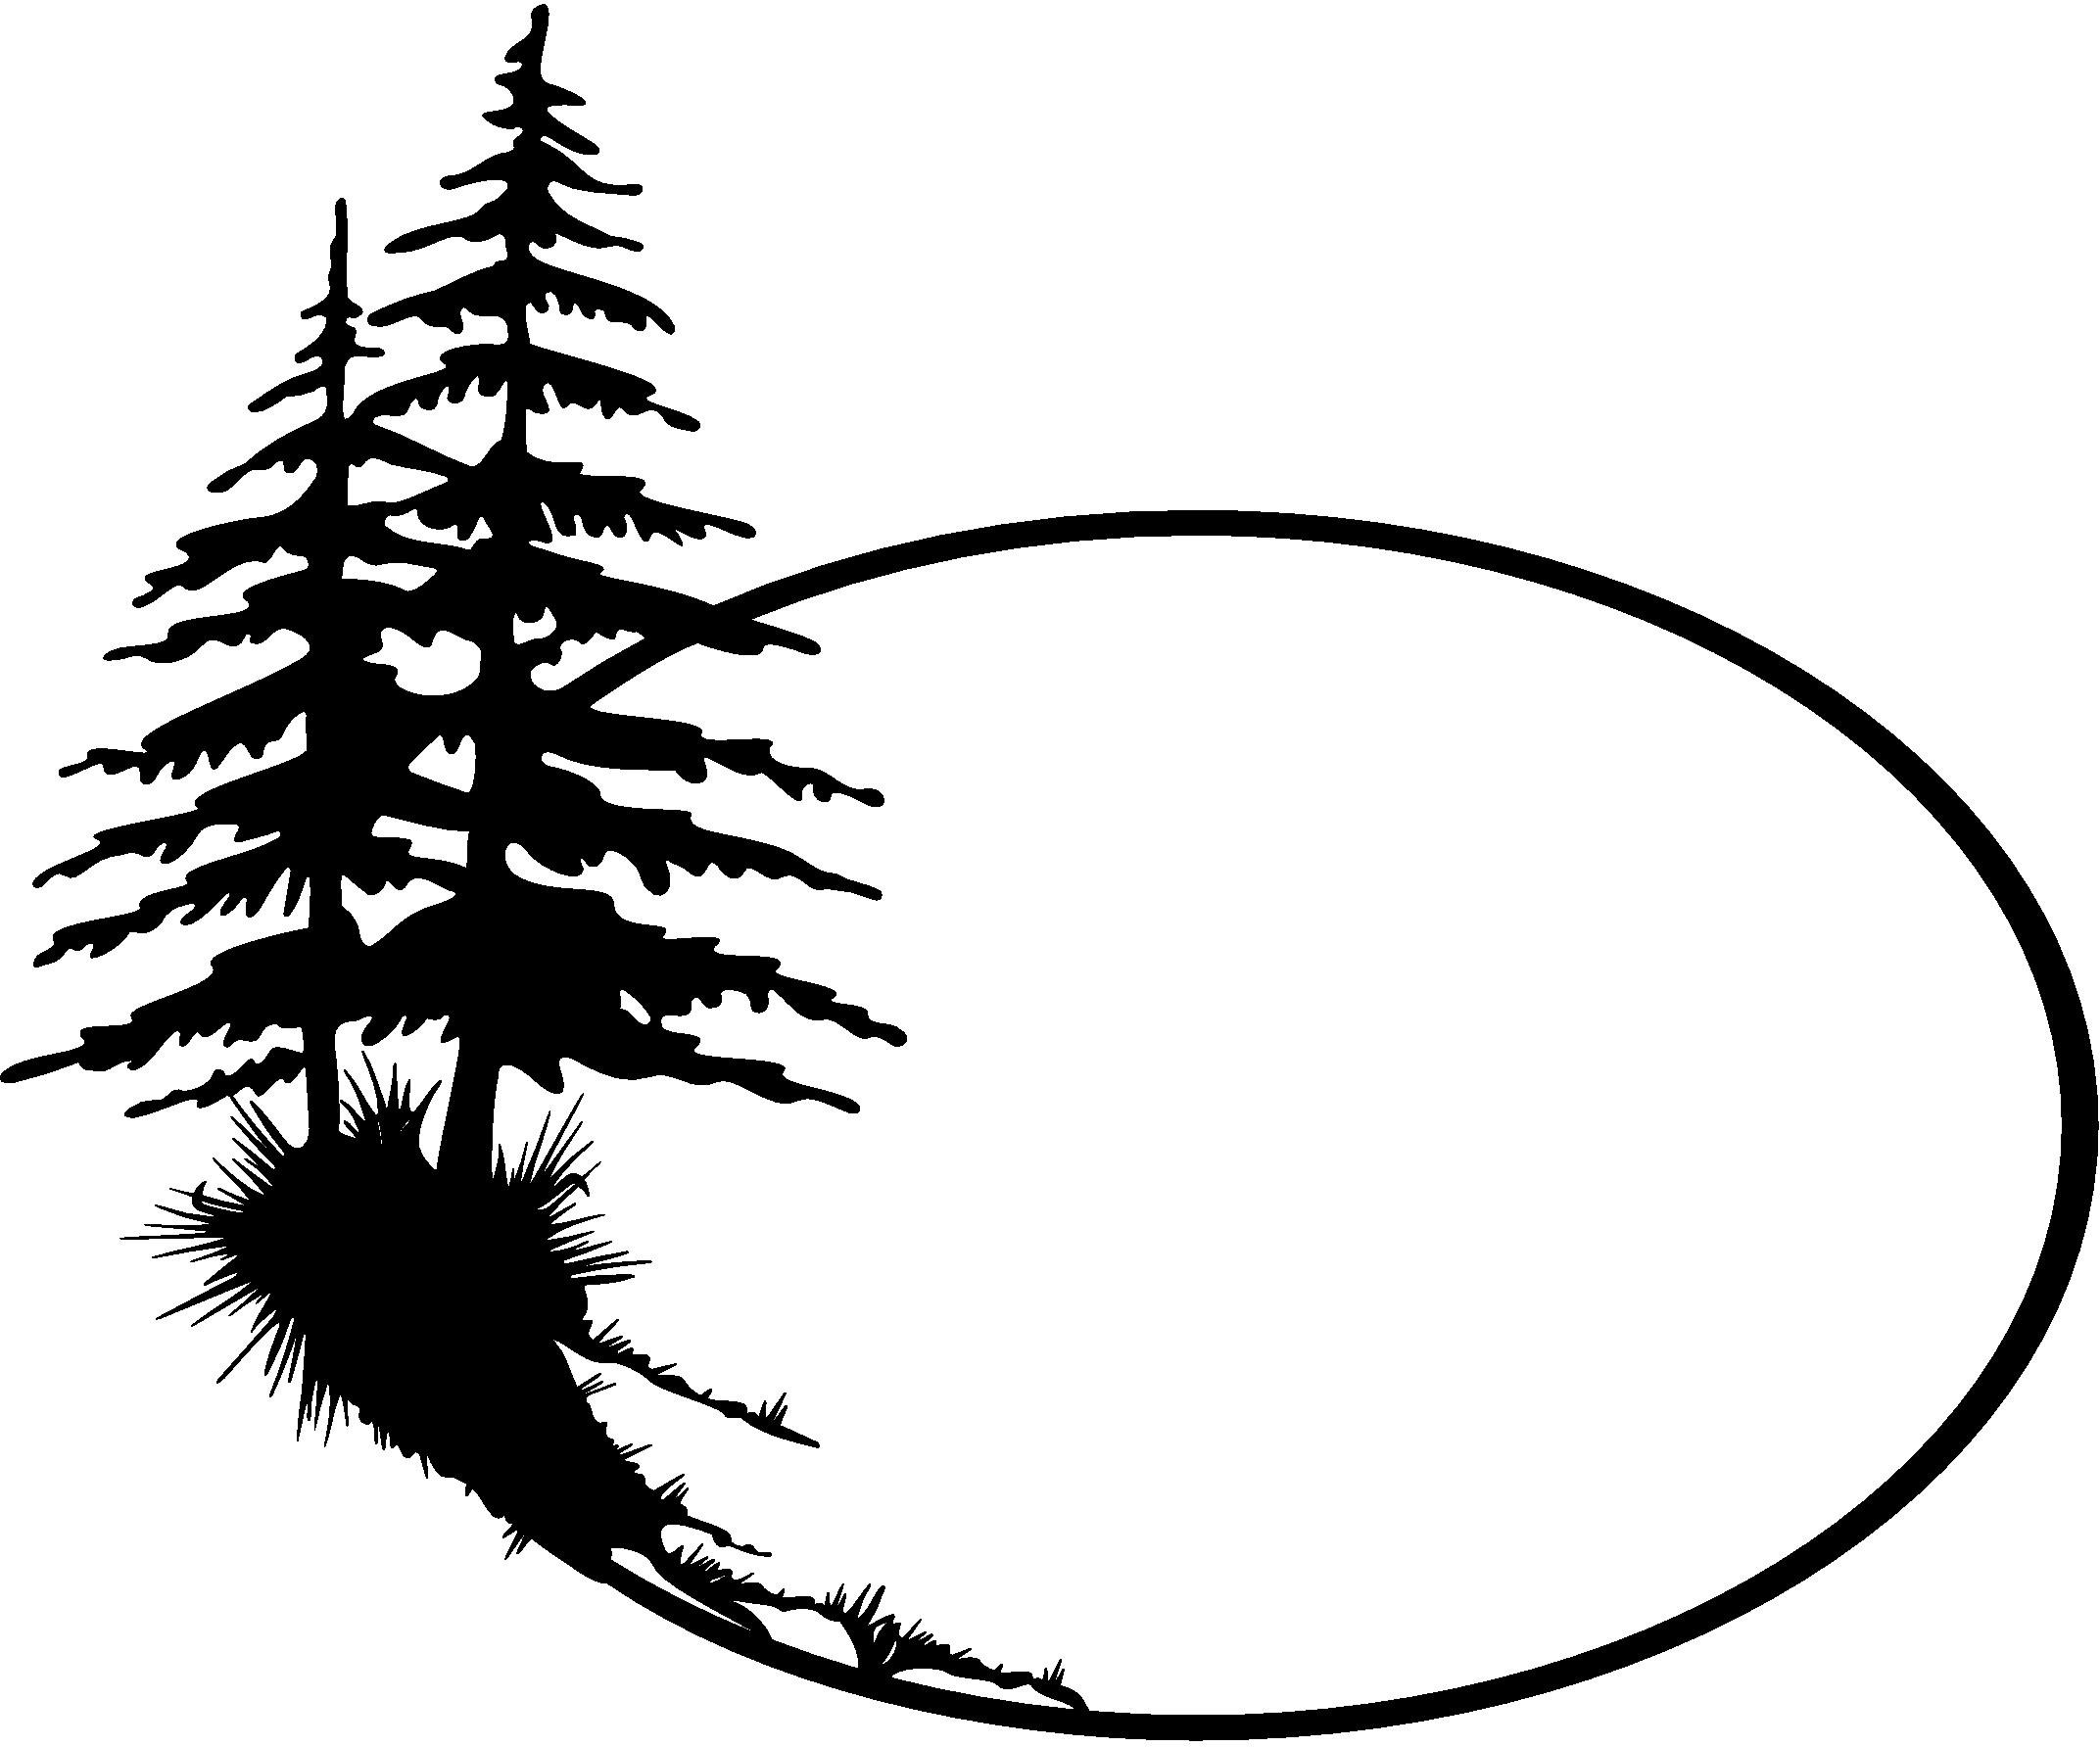 ... Redwood forest clipart; Pine Trees Silhouette | Free Download Clip Art  | Free Clip Art ..